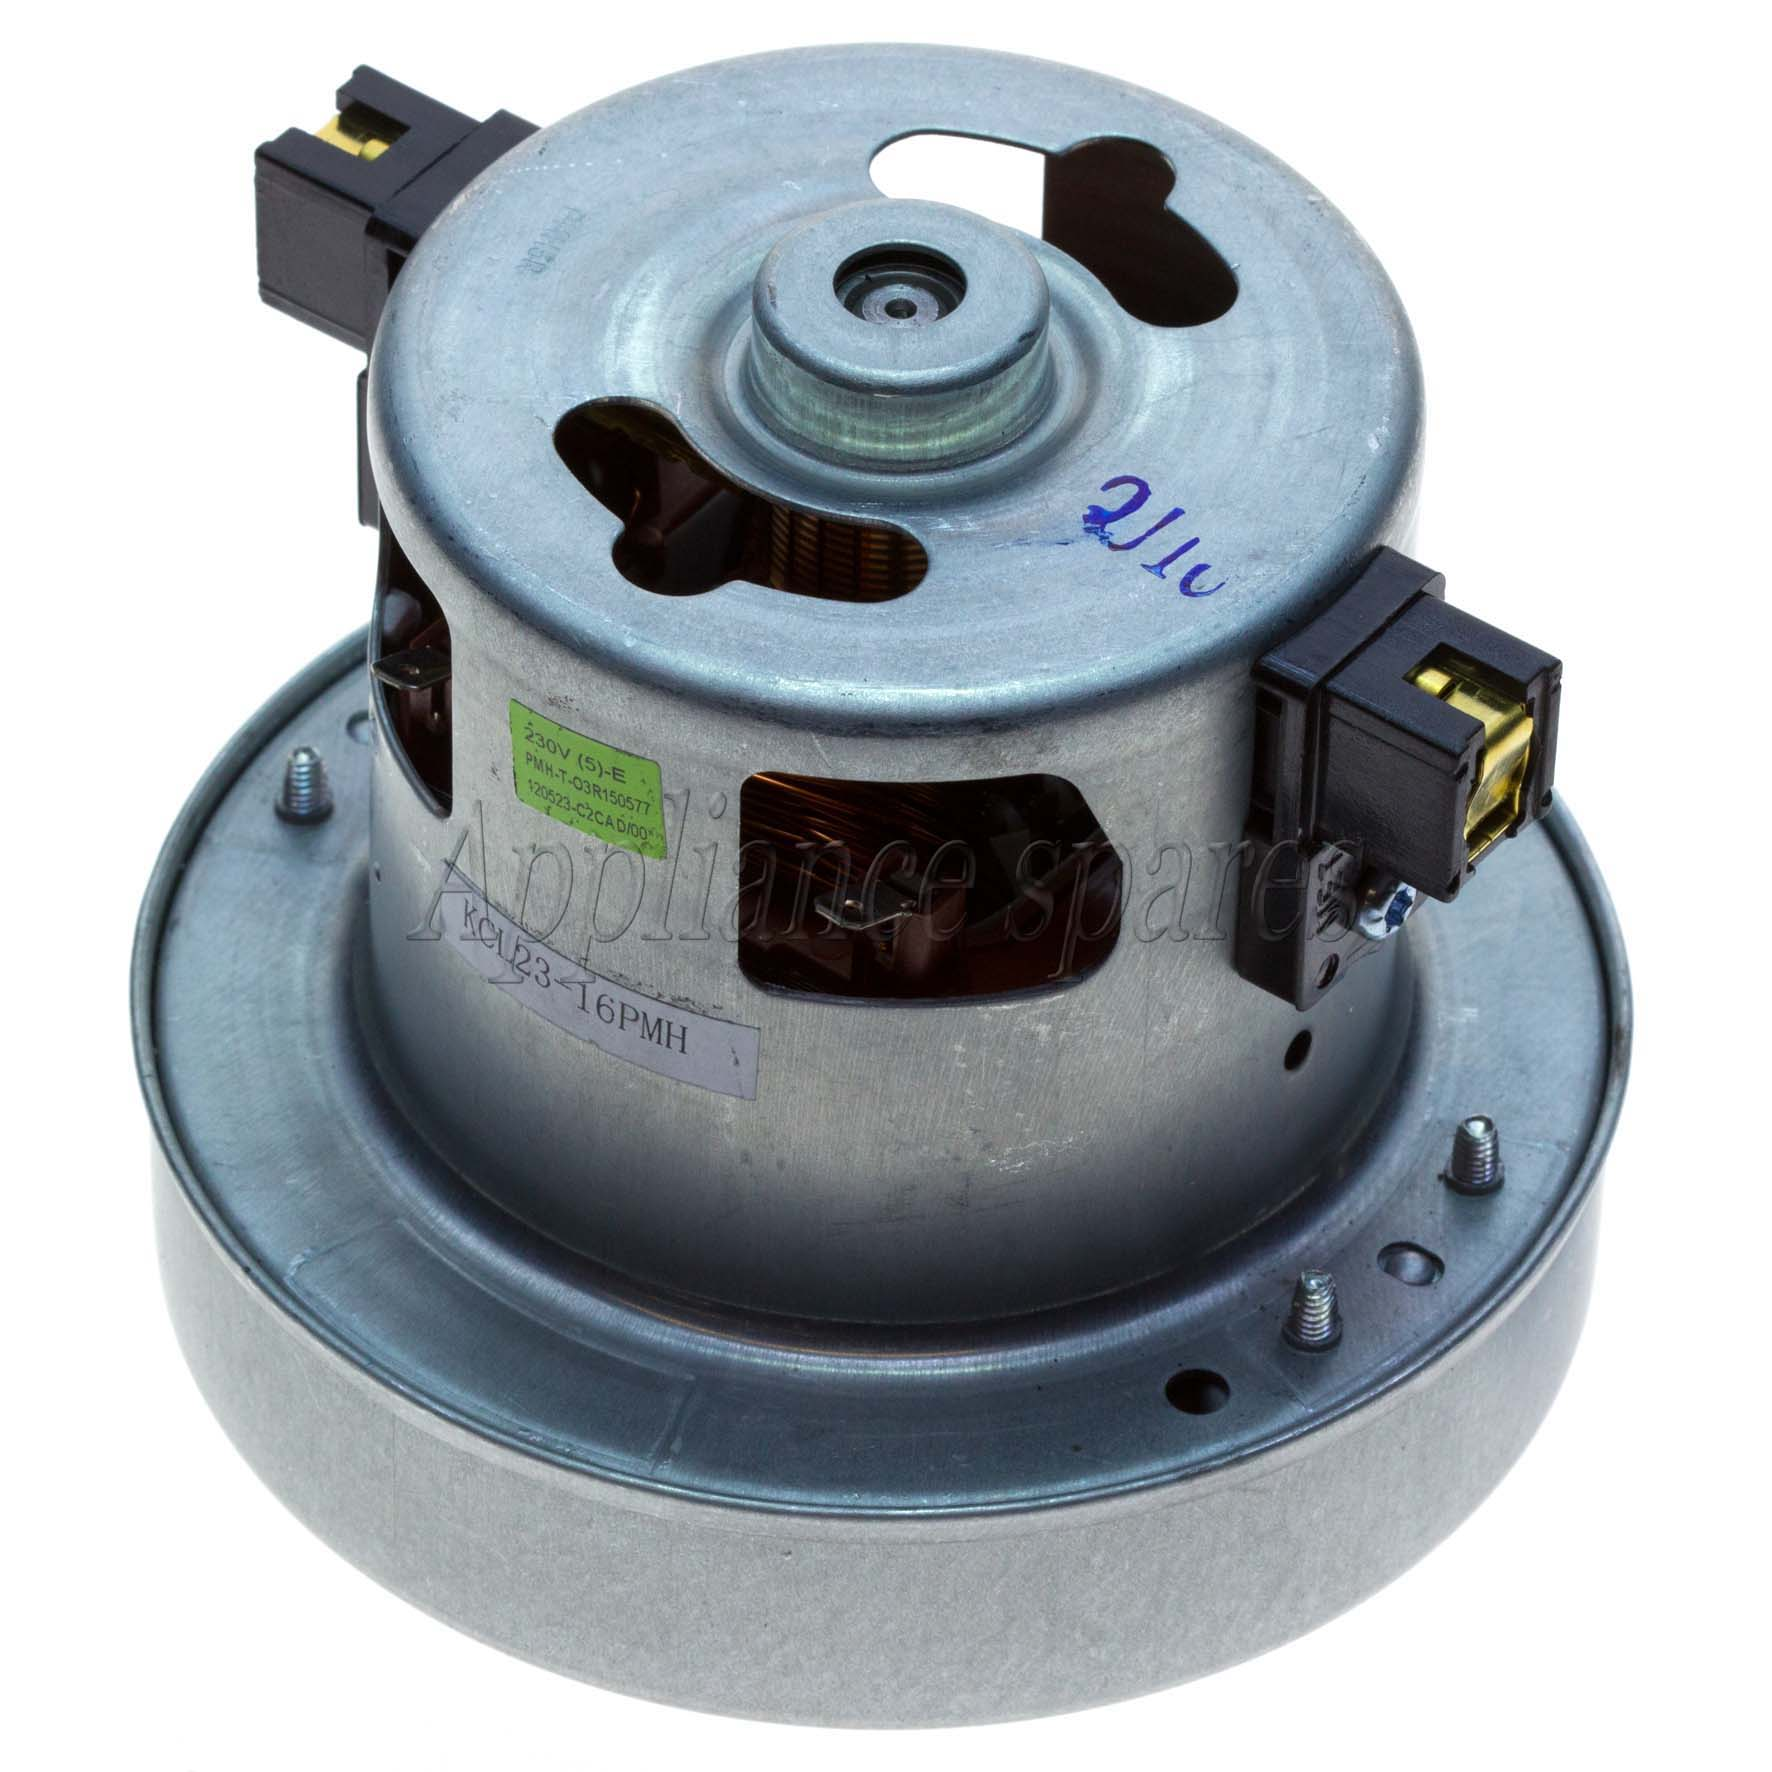 hight resolution of electrolux vacuum cleaner motor